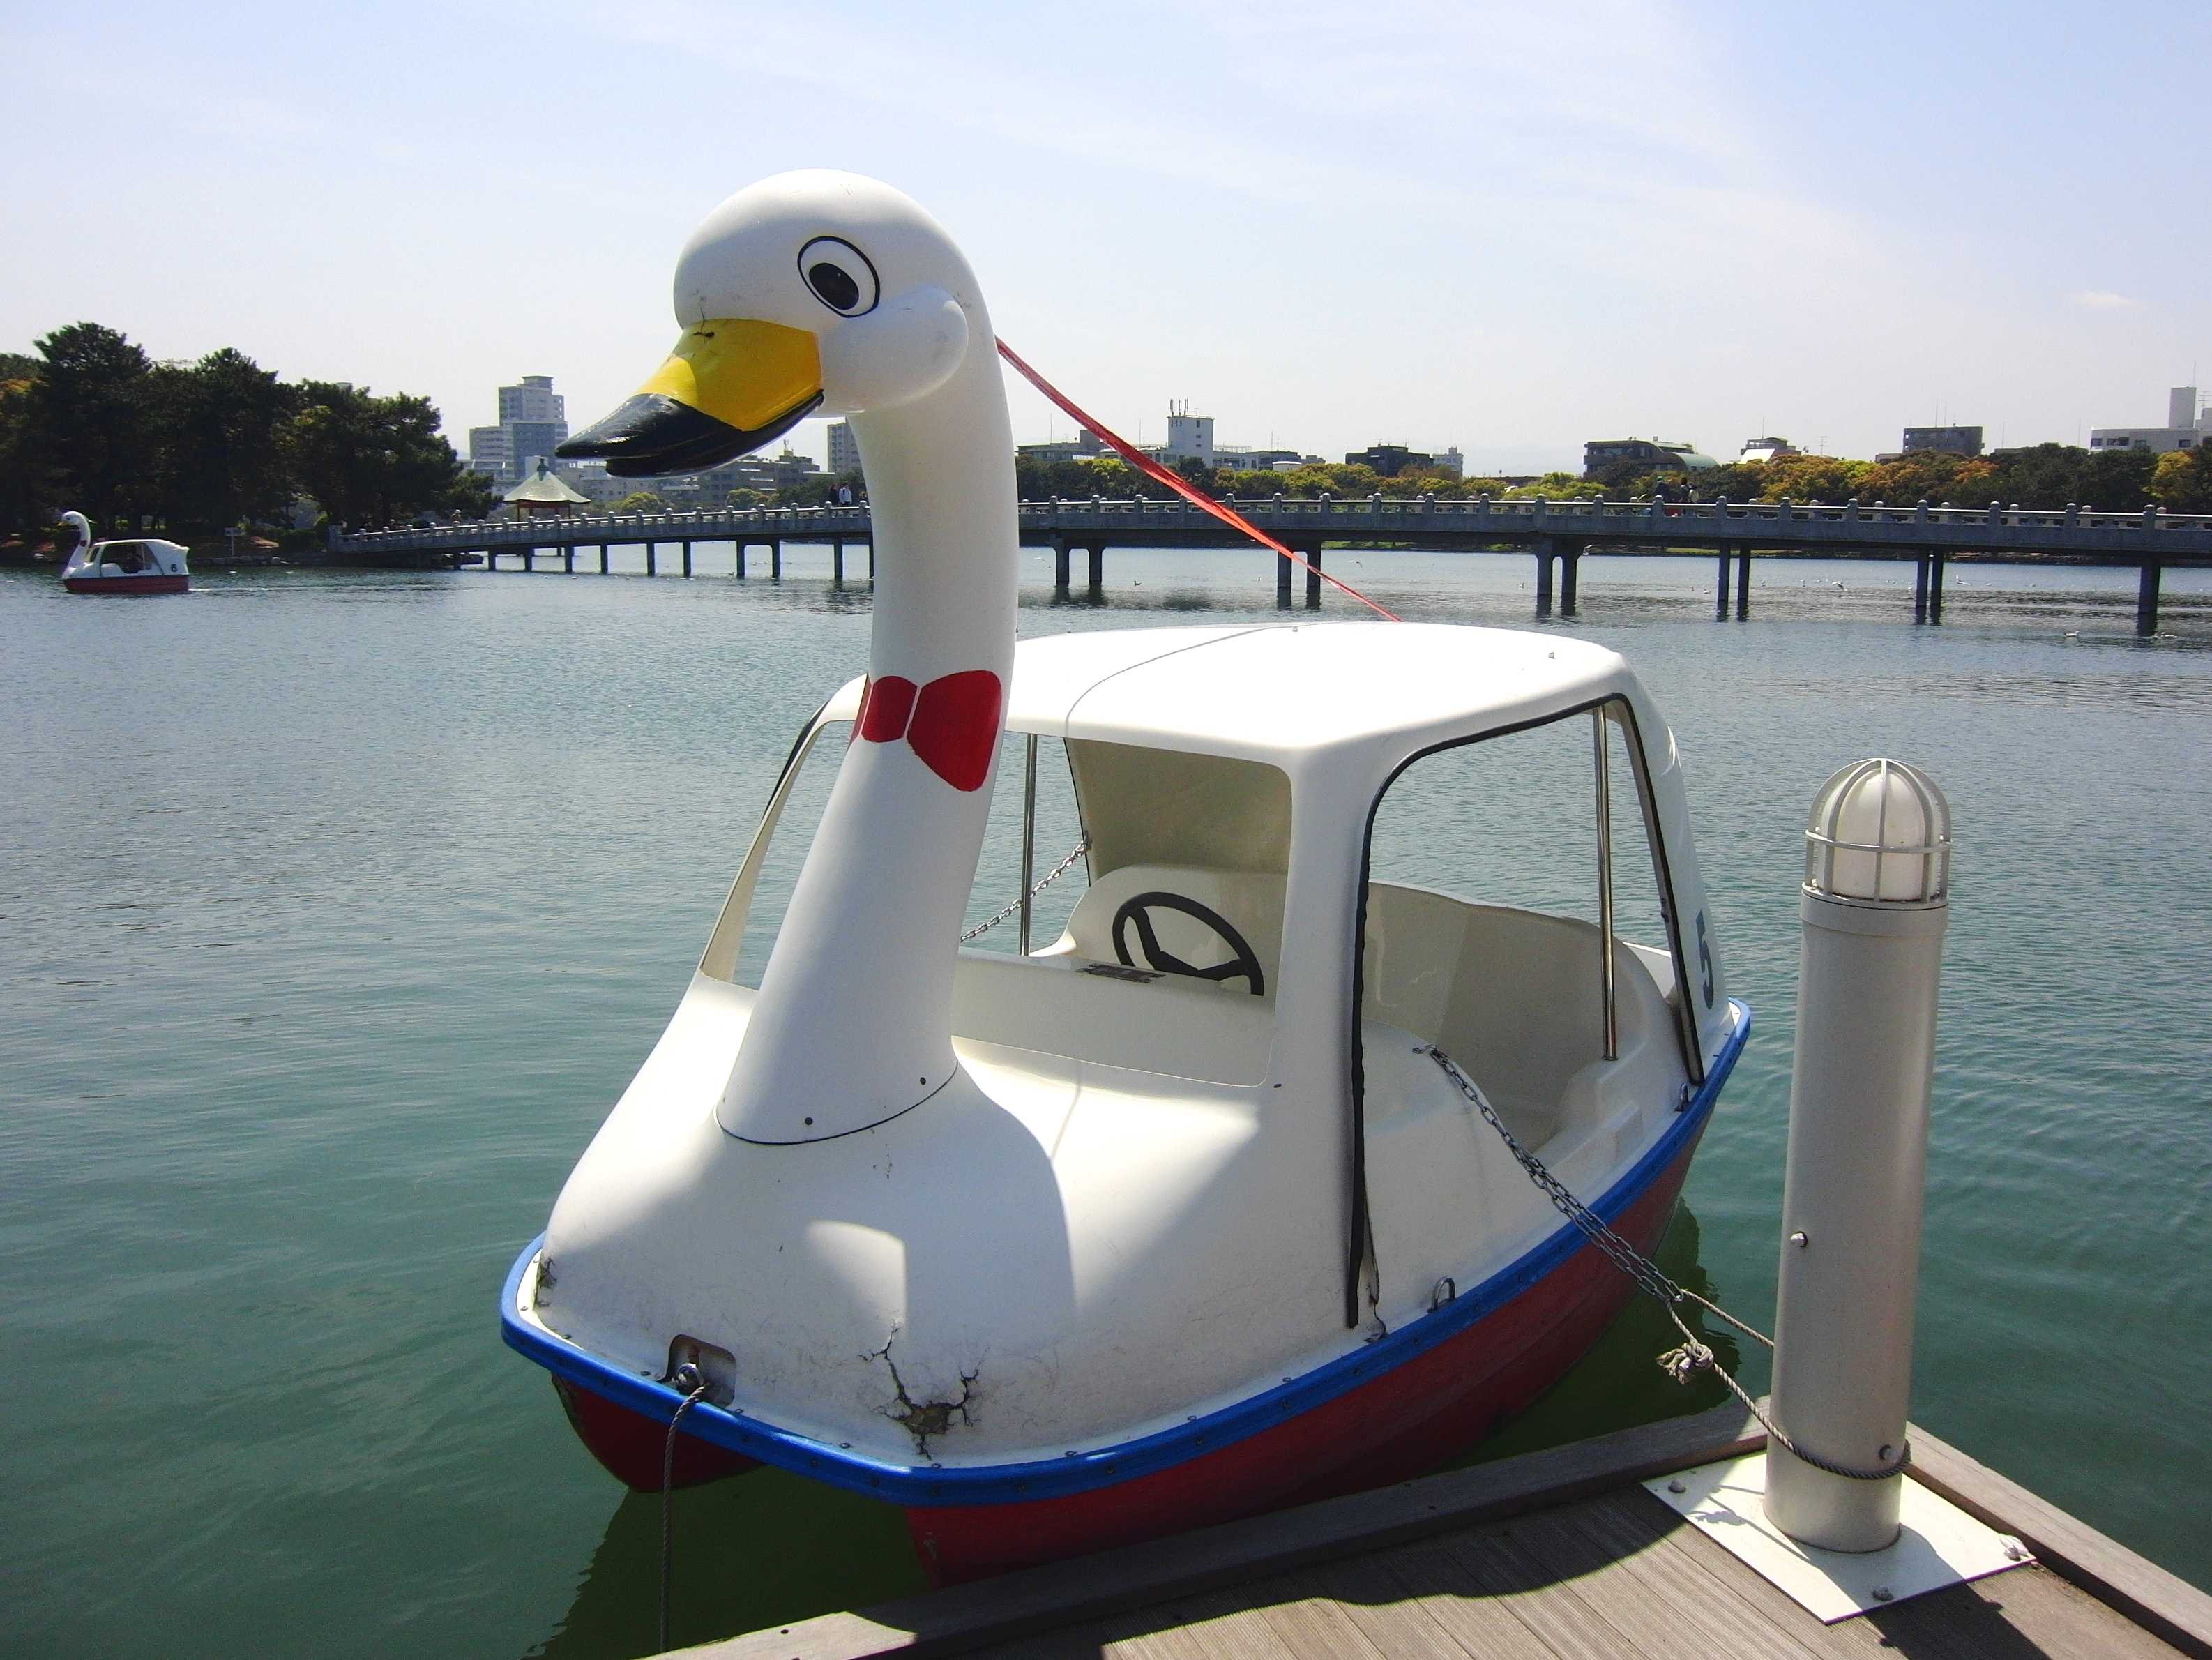 http://upload.wikimedia.org/wikipedia/commons/1/18/Swan_boat_at_Ohori_park.jpg